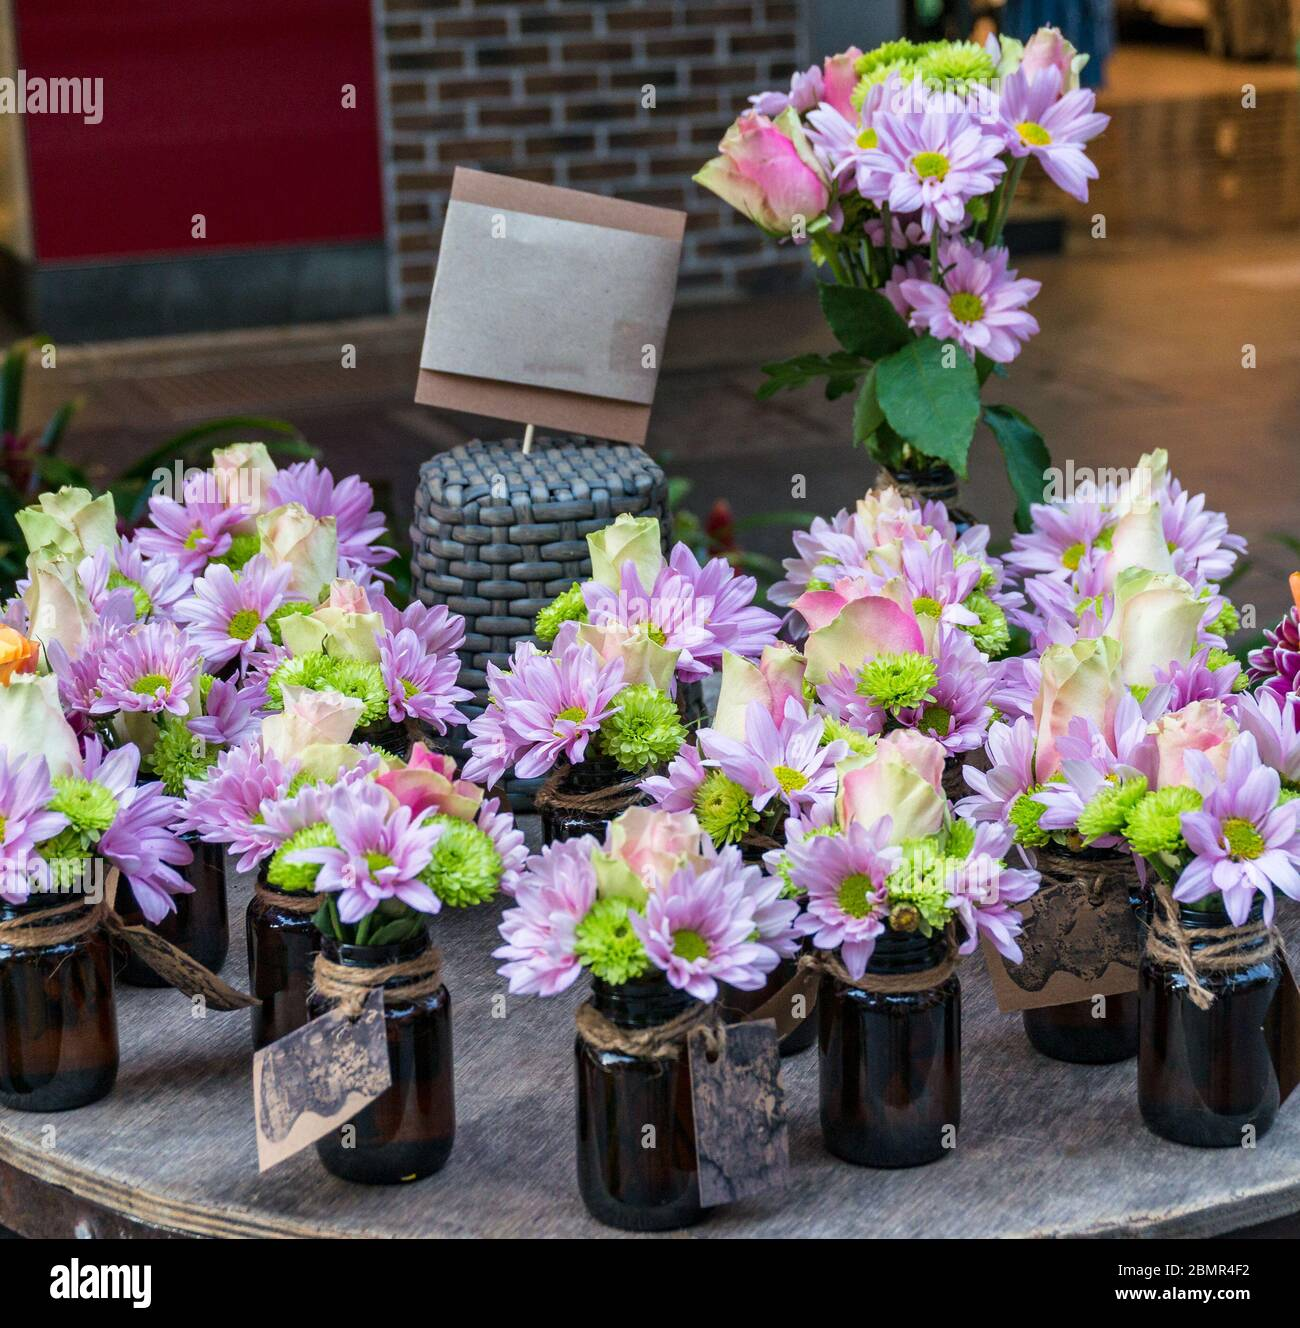 Small Purple And Green Flower Decorations In Vases Spring Wedding Flower Arrangements Background Stock Photo Alamy